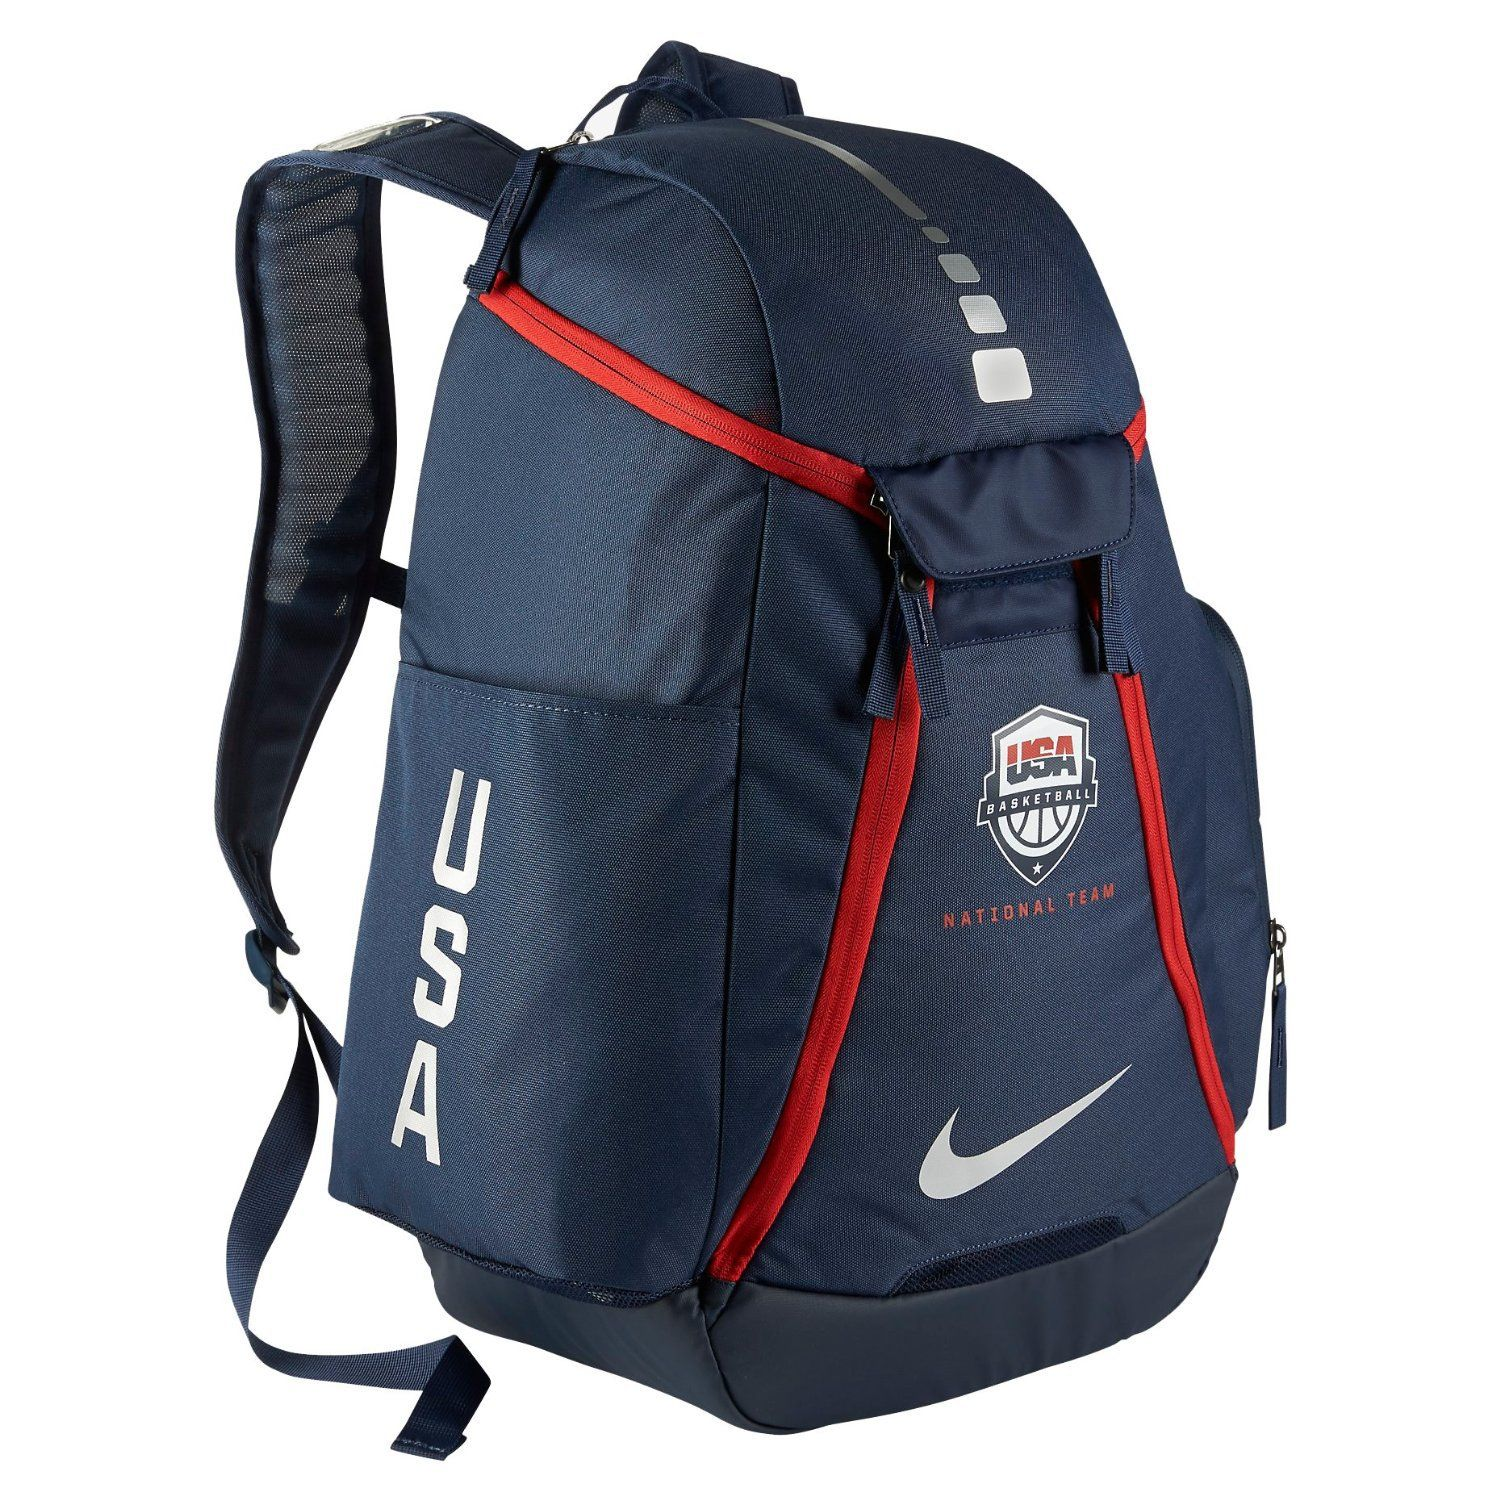 8b134a7b5d Nike Hoops Elite Max Air 2.0 Team USA Olympics Basketball Backpack ...